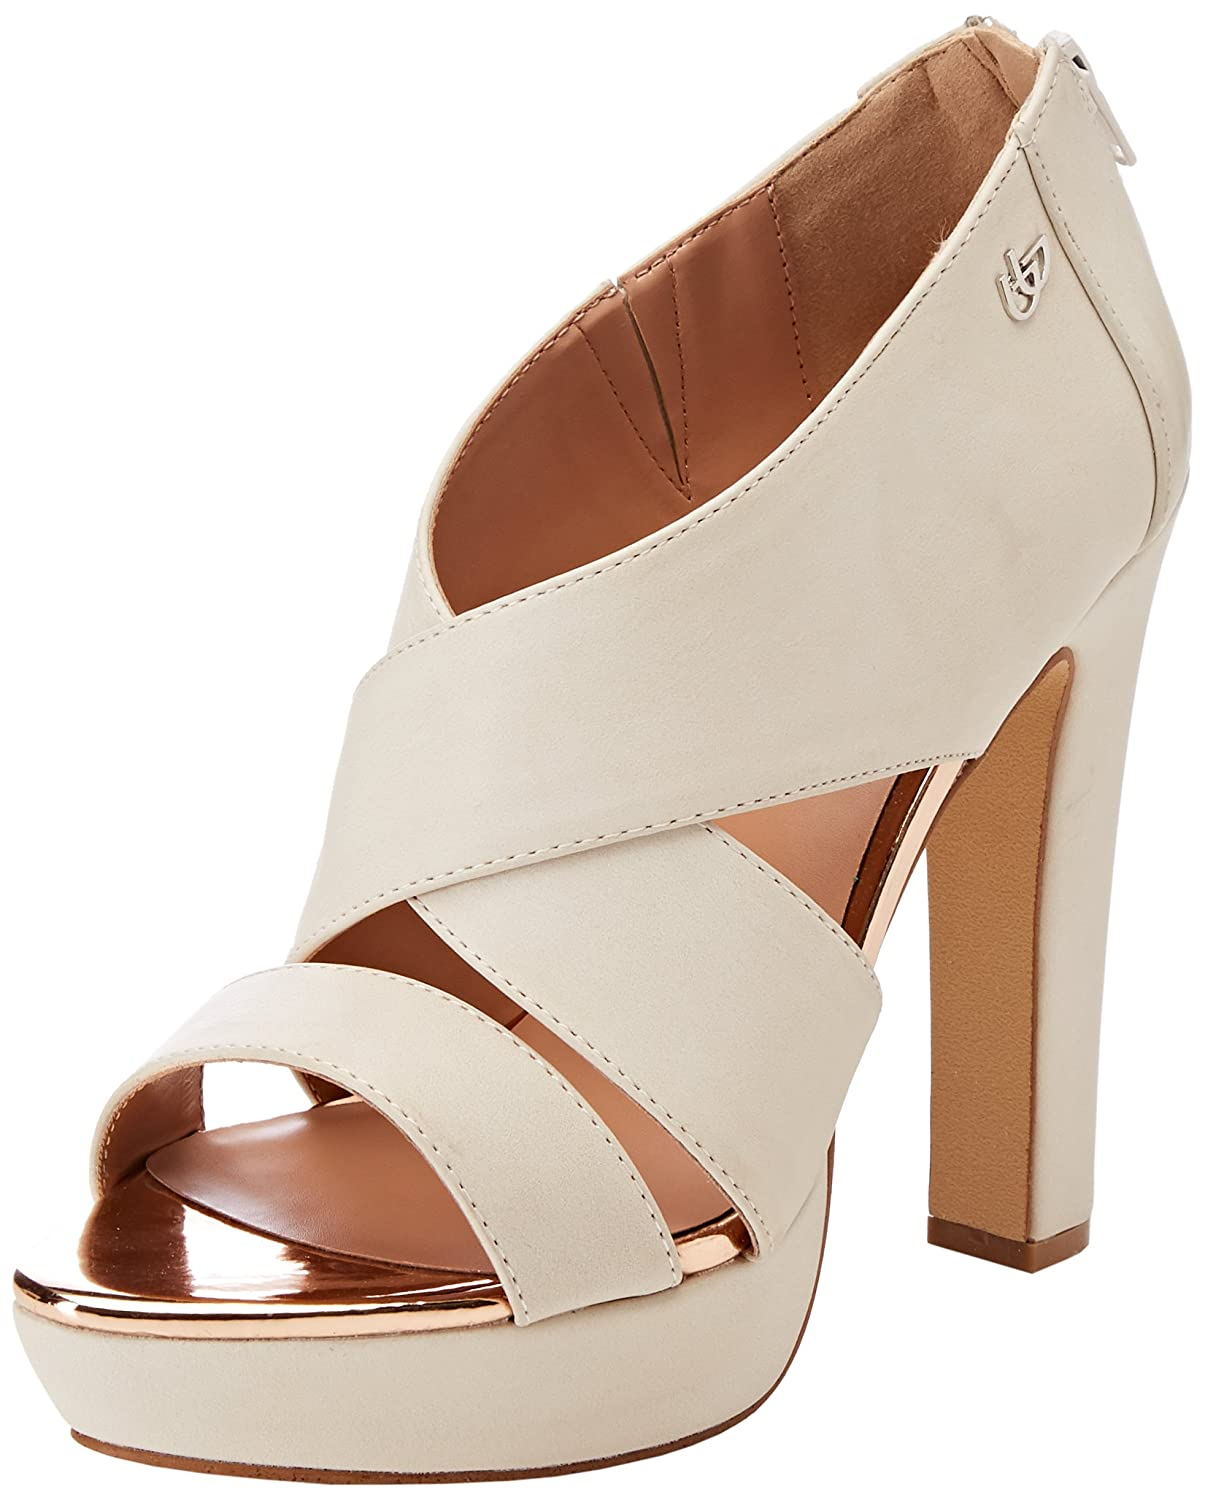 Byblos Thin Hell, Sandales Bout Ouvert Femme, (Nero 001), 37 EU